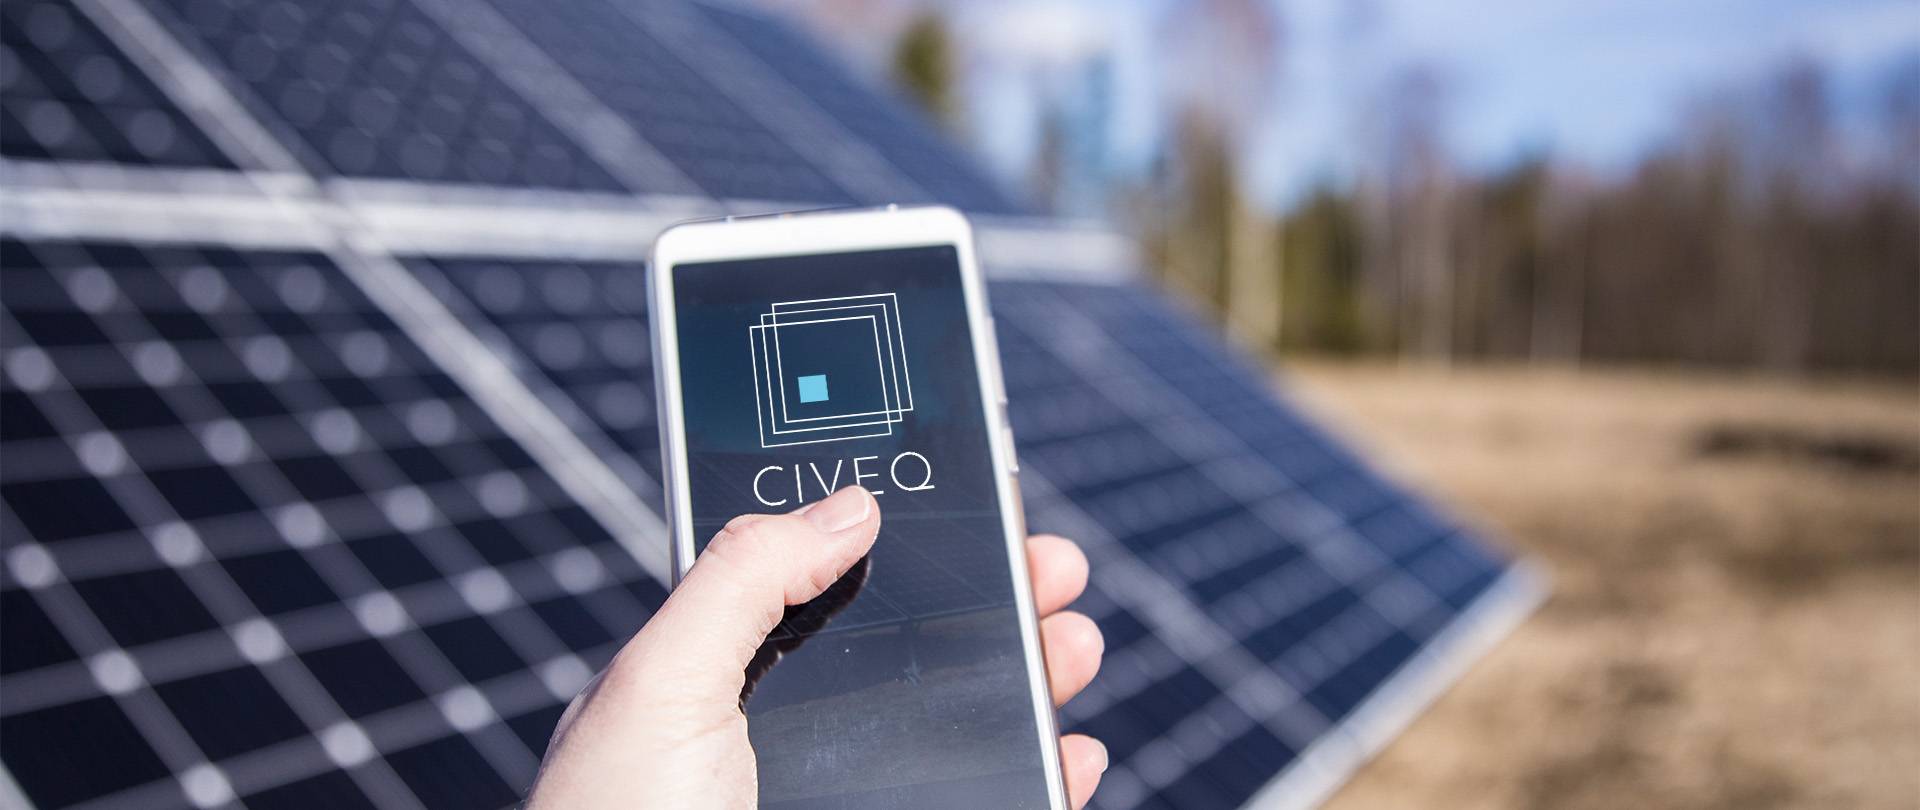 Civeq Smartphone App in Front of Solar Panels